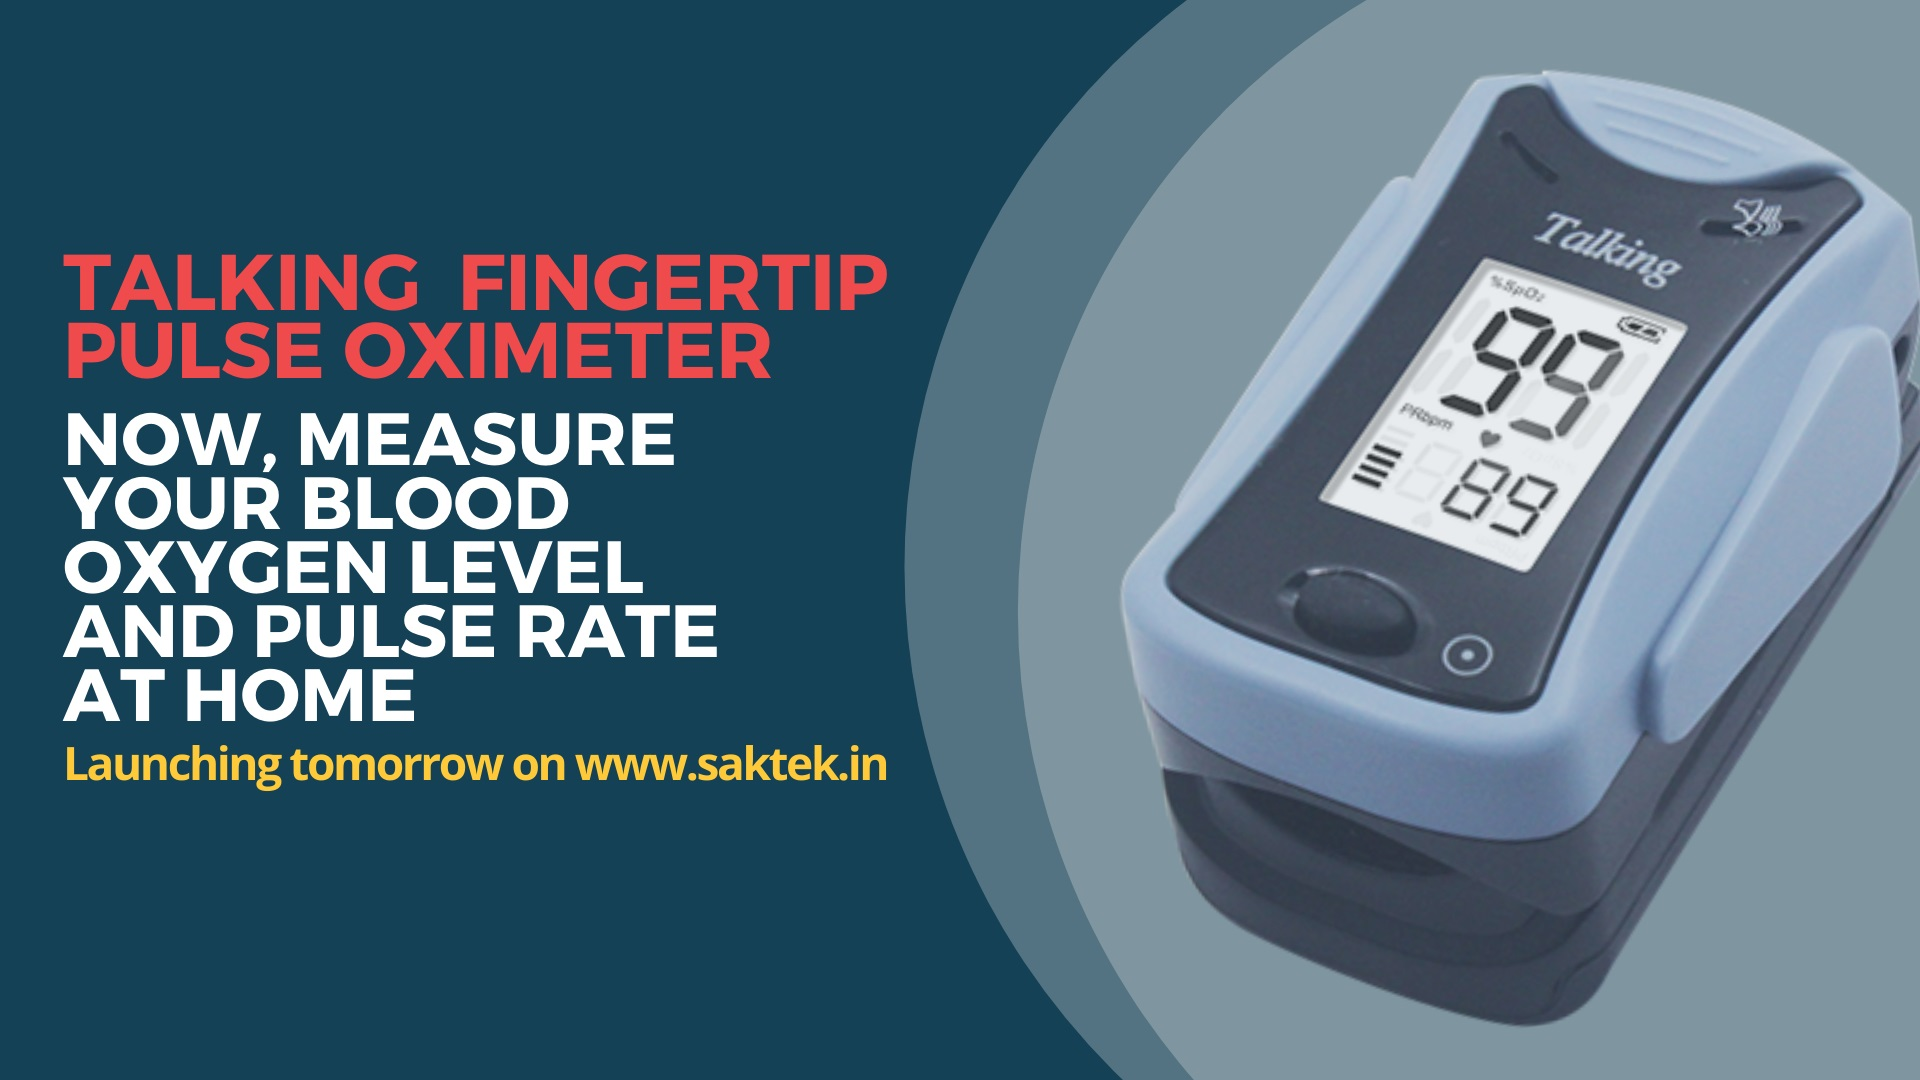 Talking fingertip pulse oximeter Now, measure your blood oxygen level and pulse rate at home.